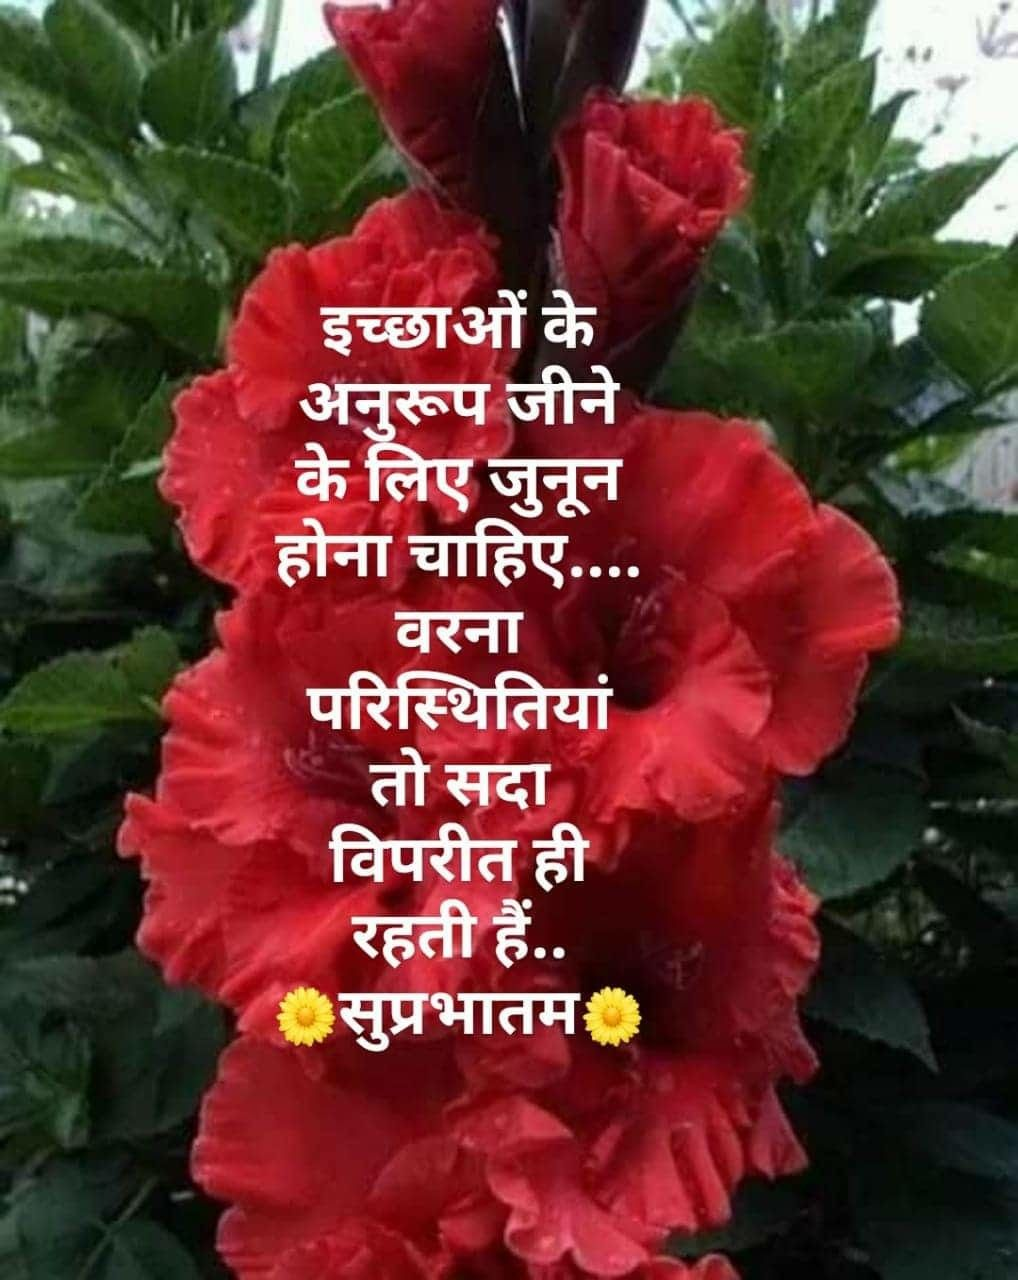 Pin By Ameer Afzaly On म क ष म र ग Hindi Good Morning Quotes Good Morning Images Good Morning Messages